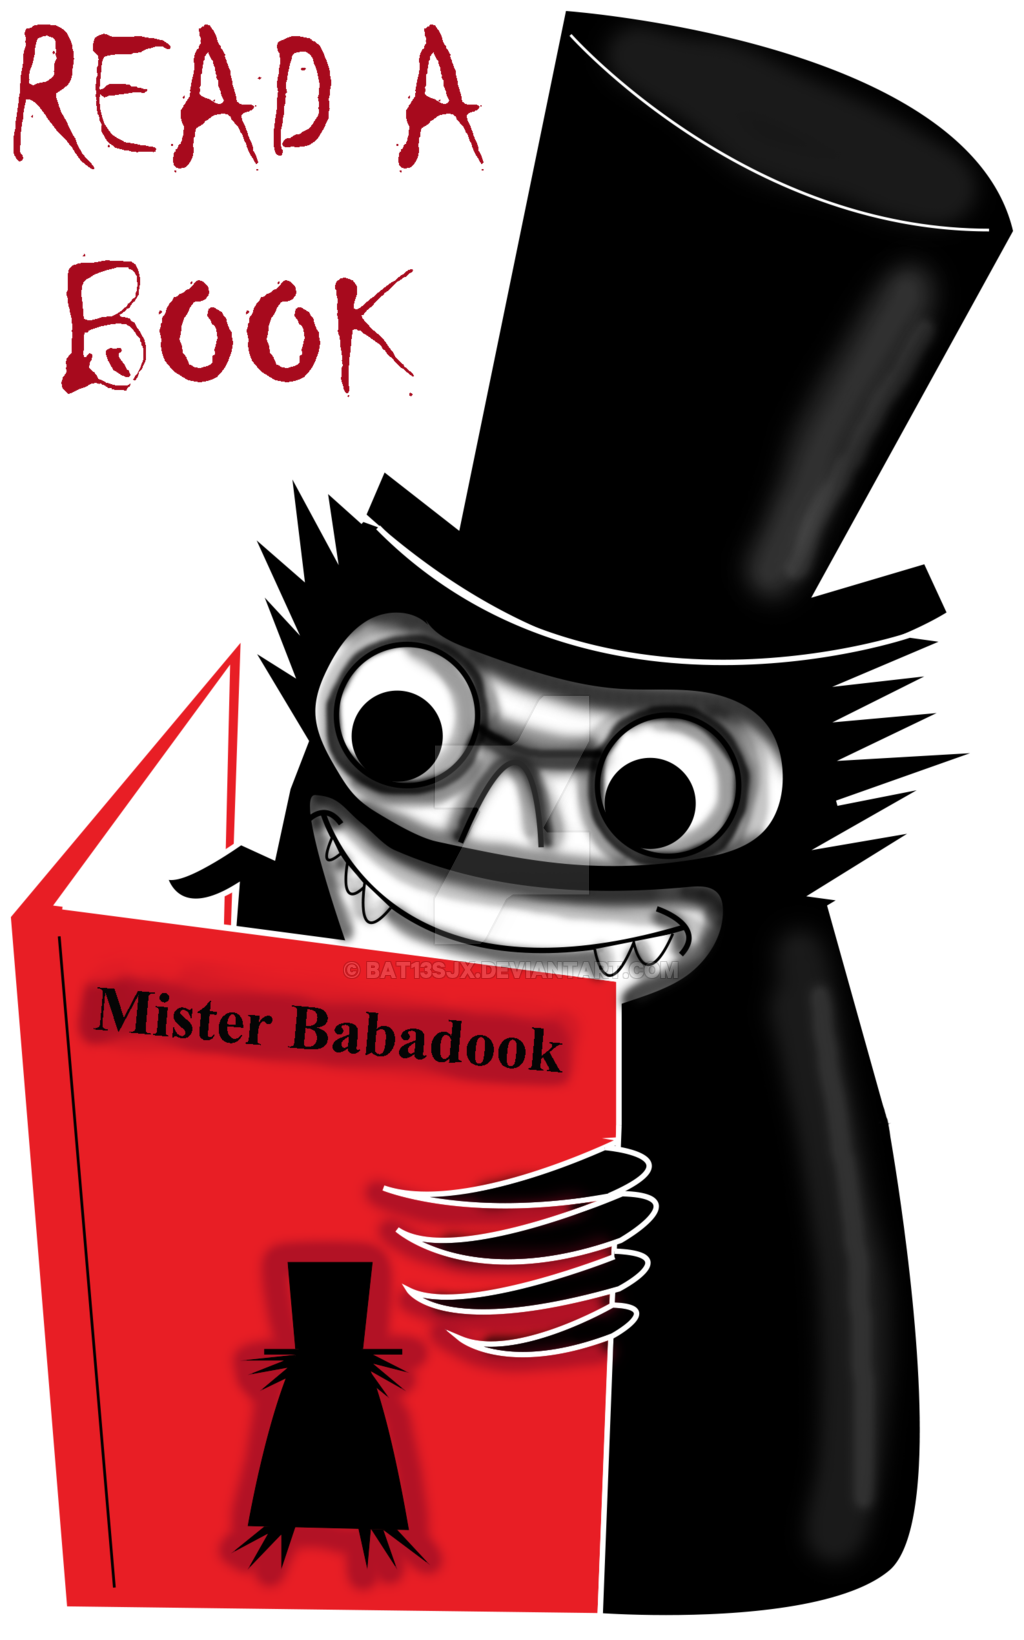 Babadook transparent 5g 5s. Read a book with